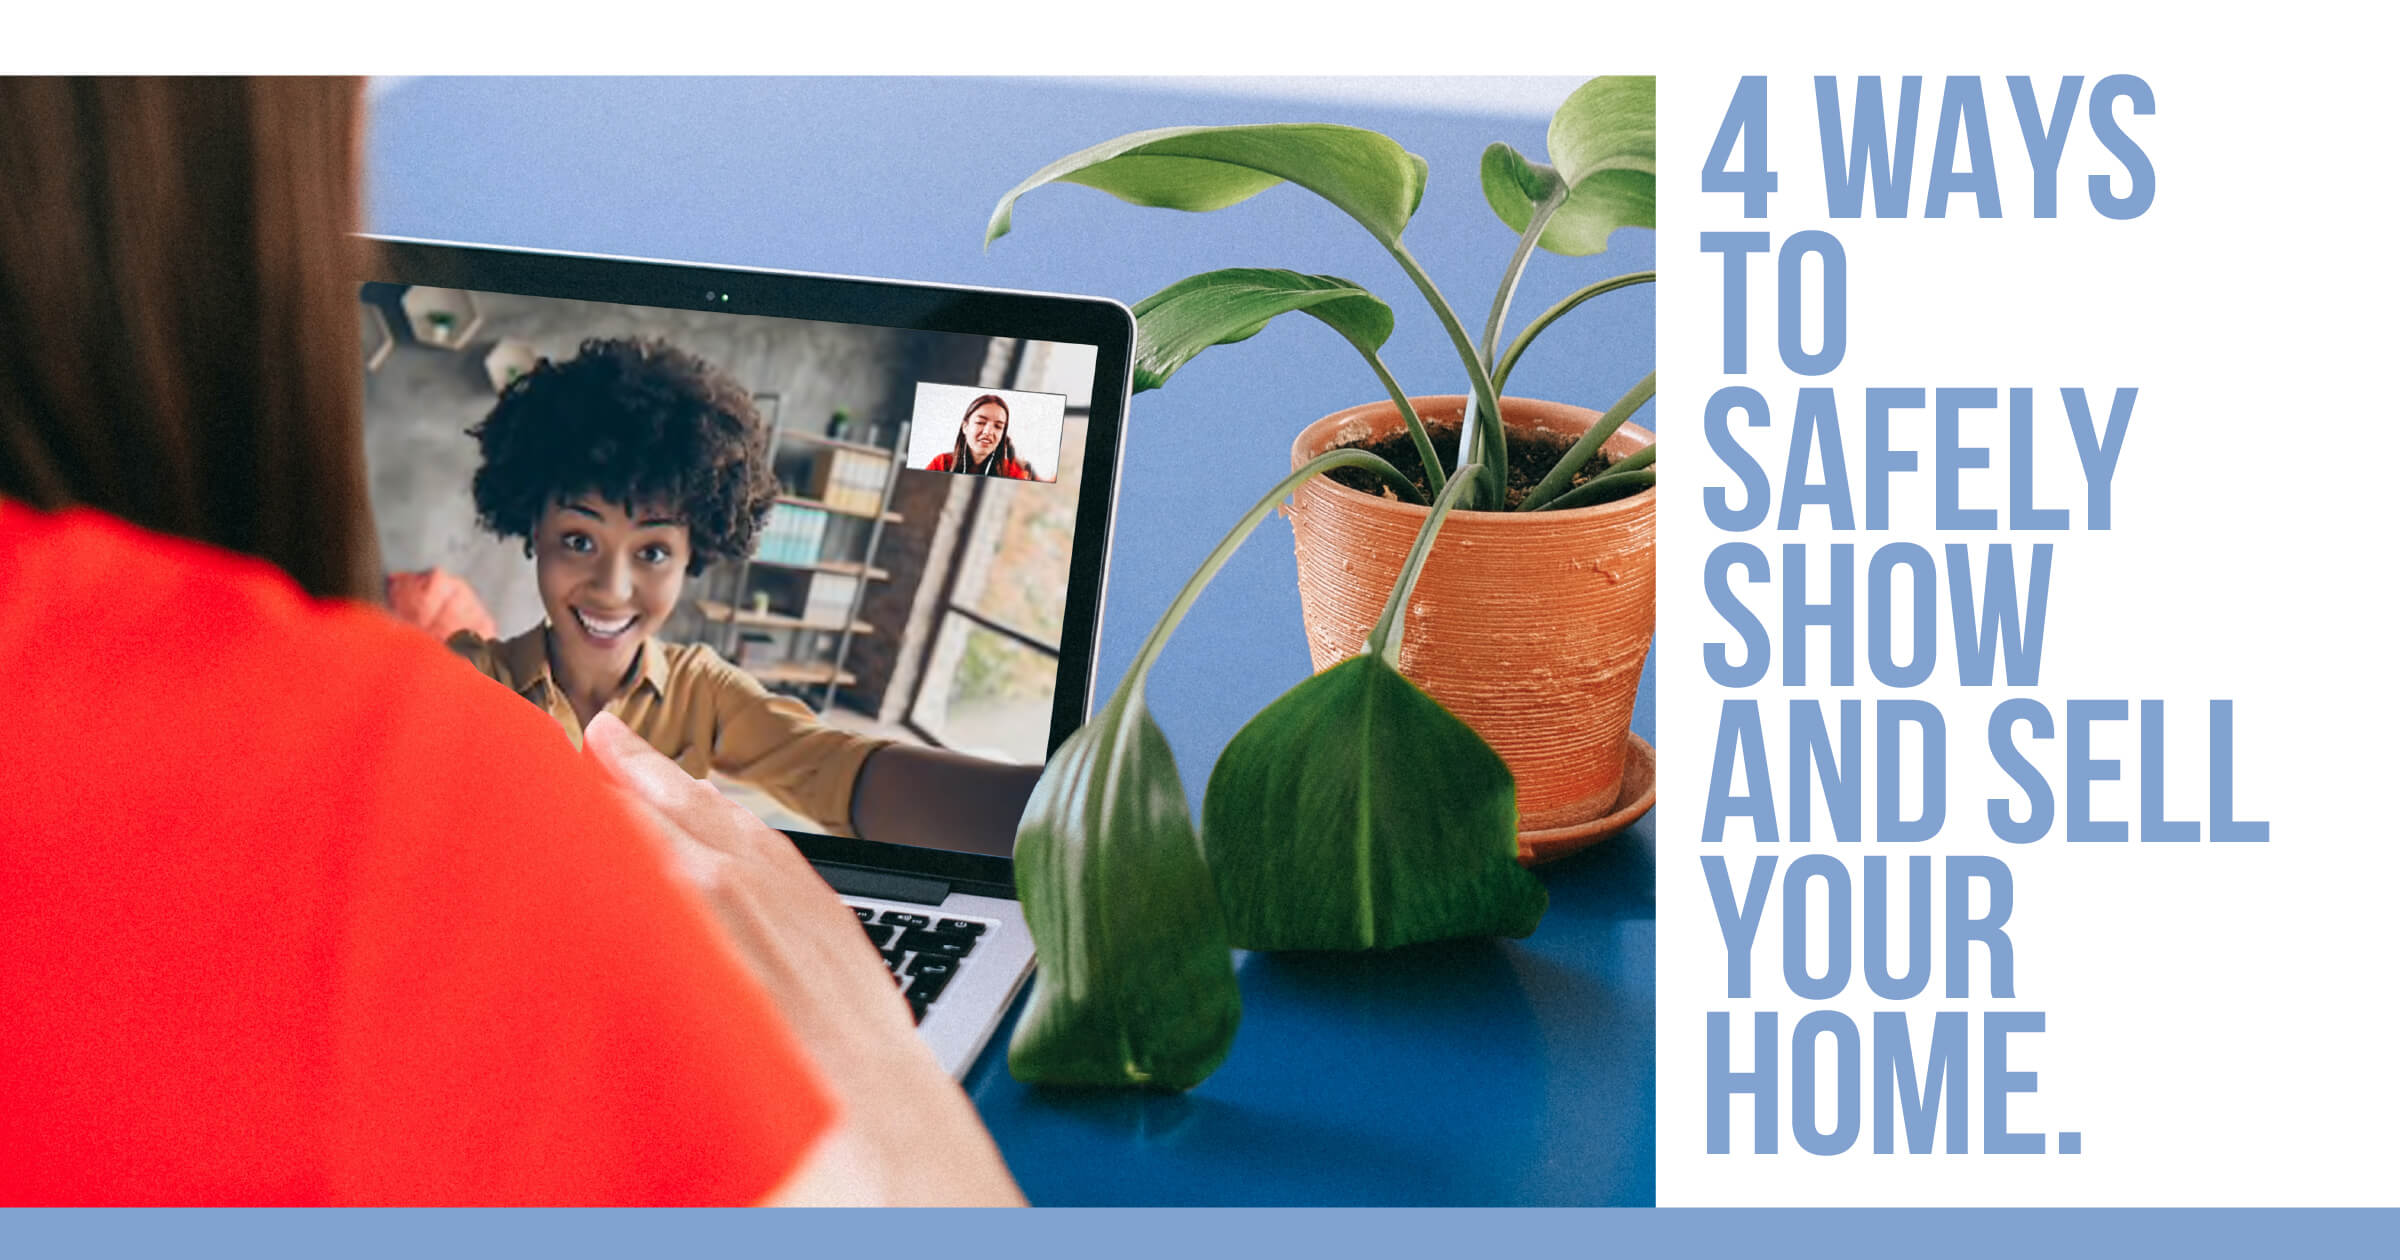 4 ways to show and sell your home safely